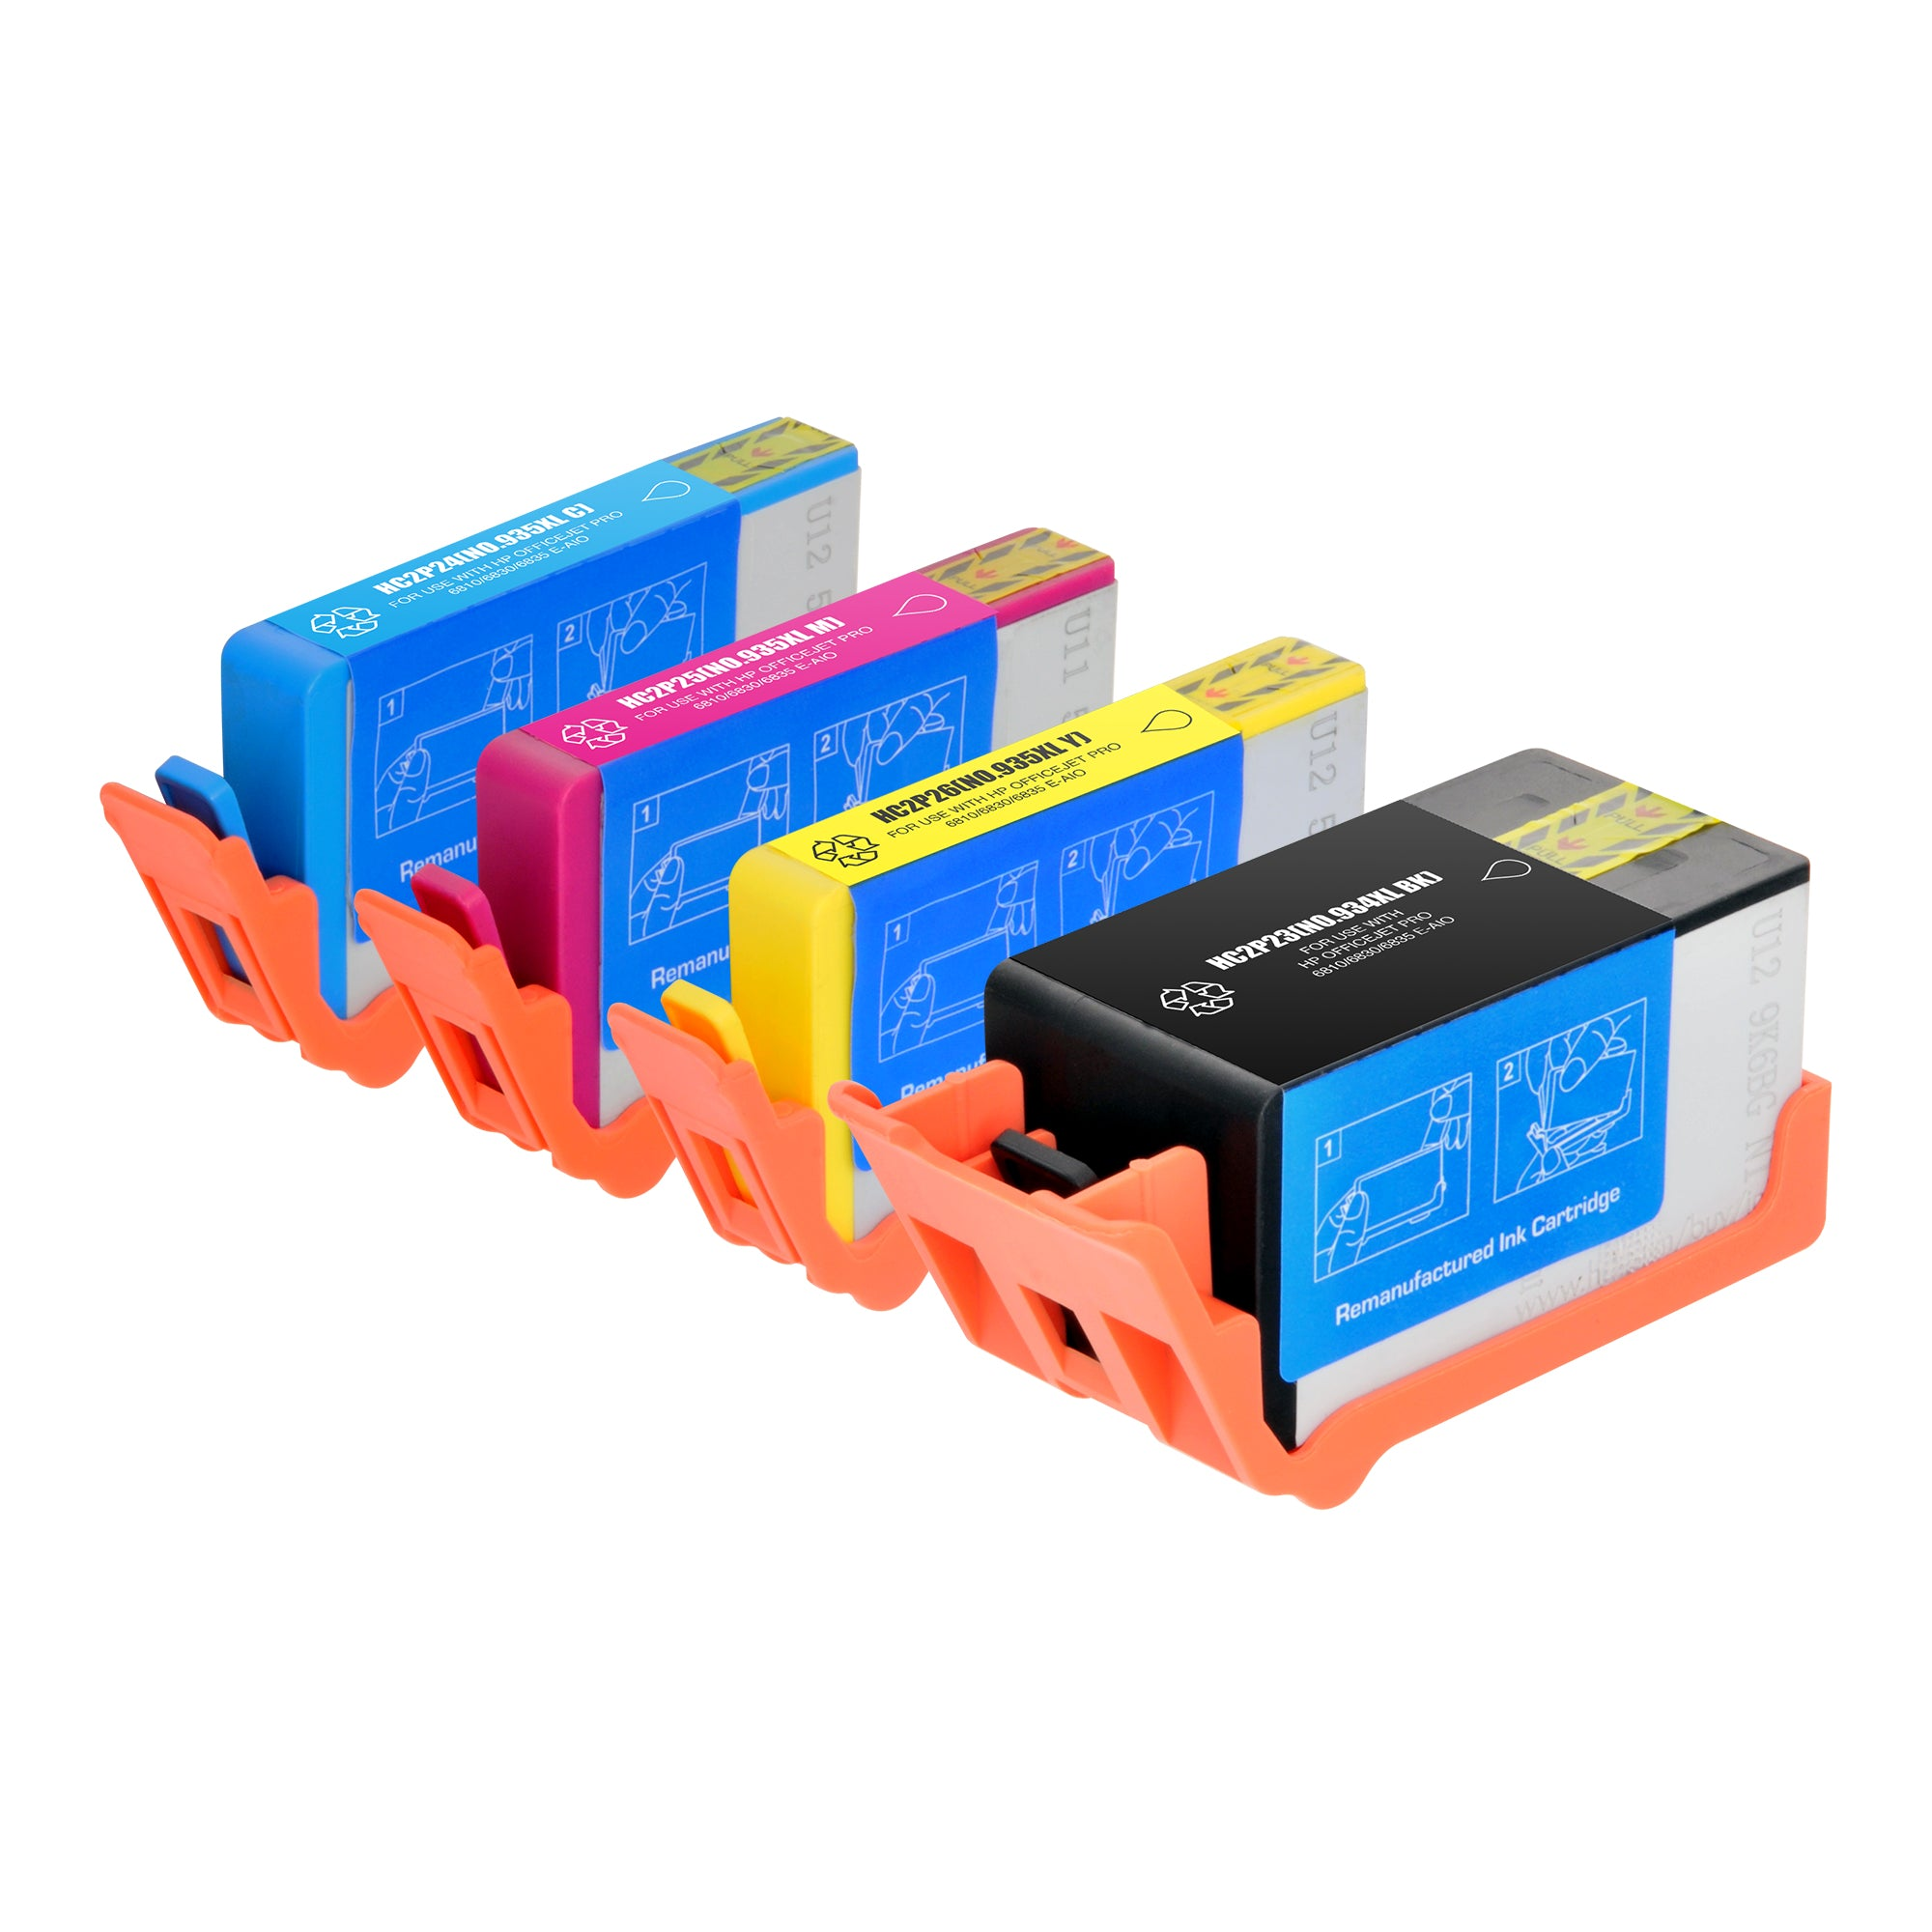 Arthur Imaging Remanufactured Ink Cartridge Replacement for HP 934XL & 935XL (1 Black, 1 Cyan, 1 Magenta, 1 Yellow, 4-Pack)